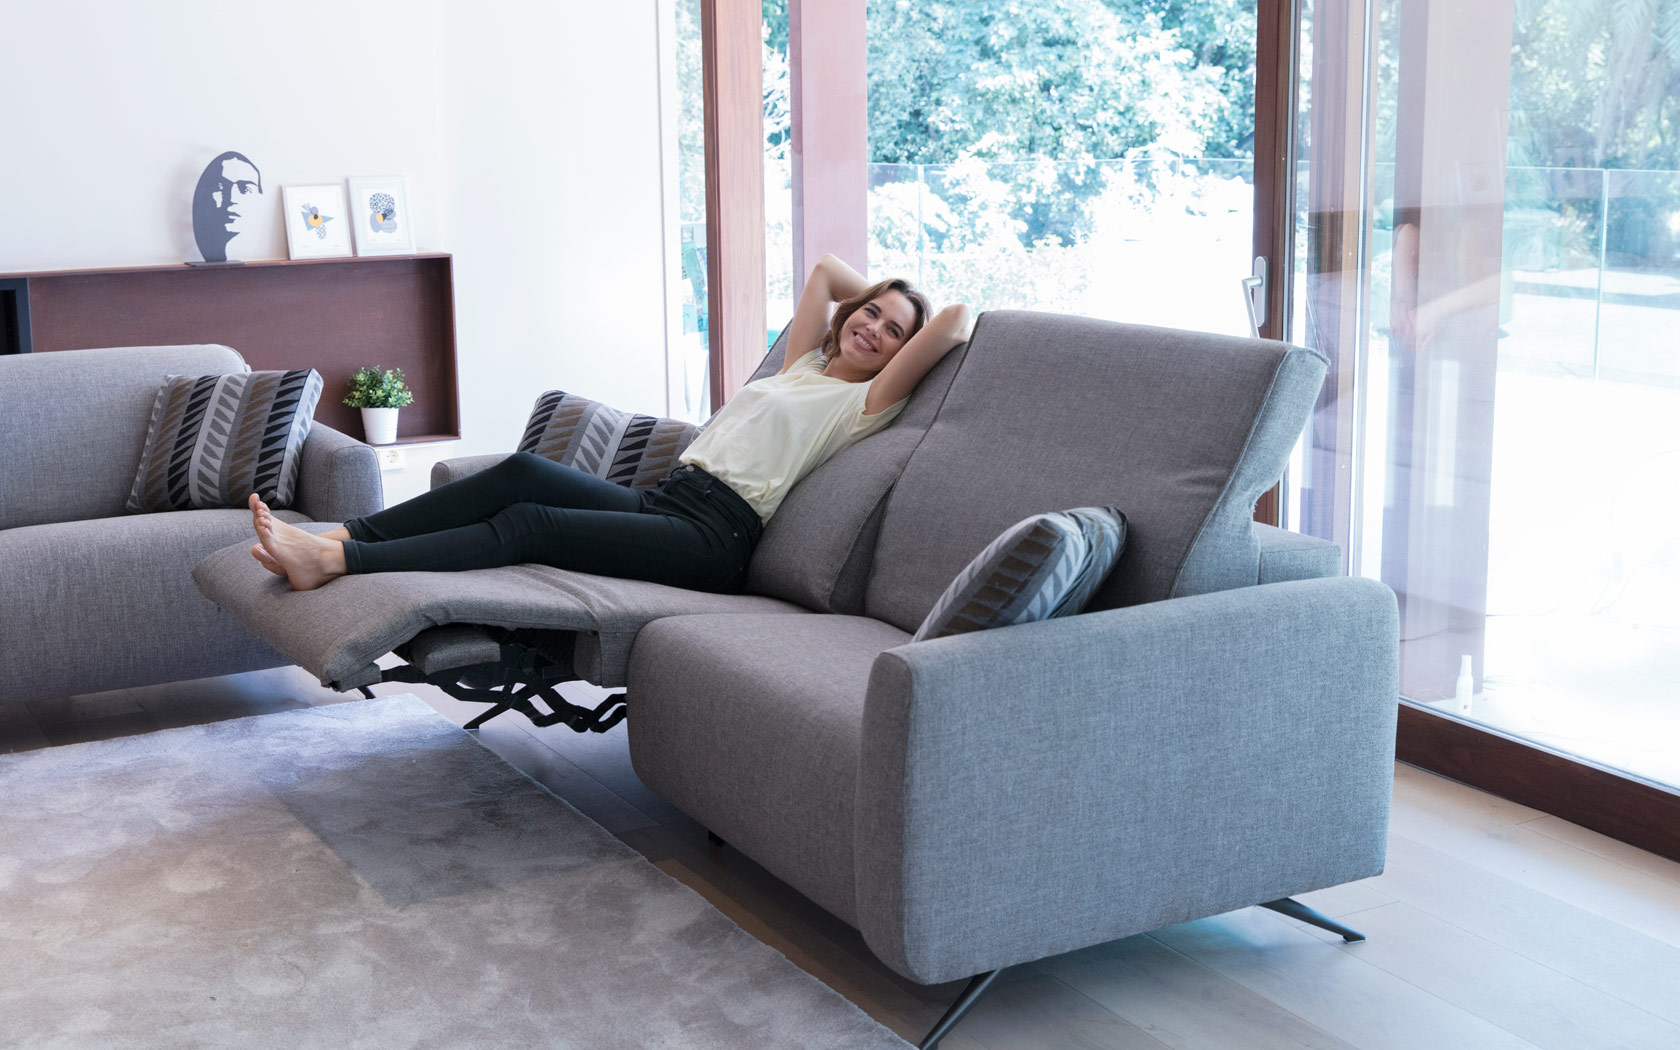 Baltia sofa relax 2020 07